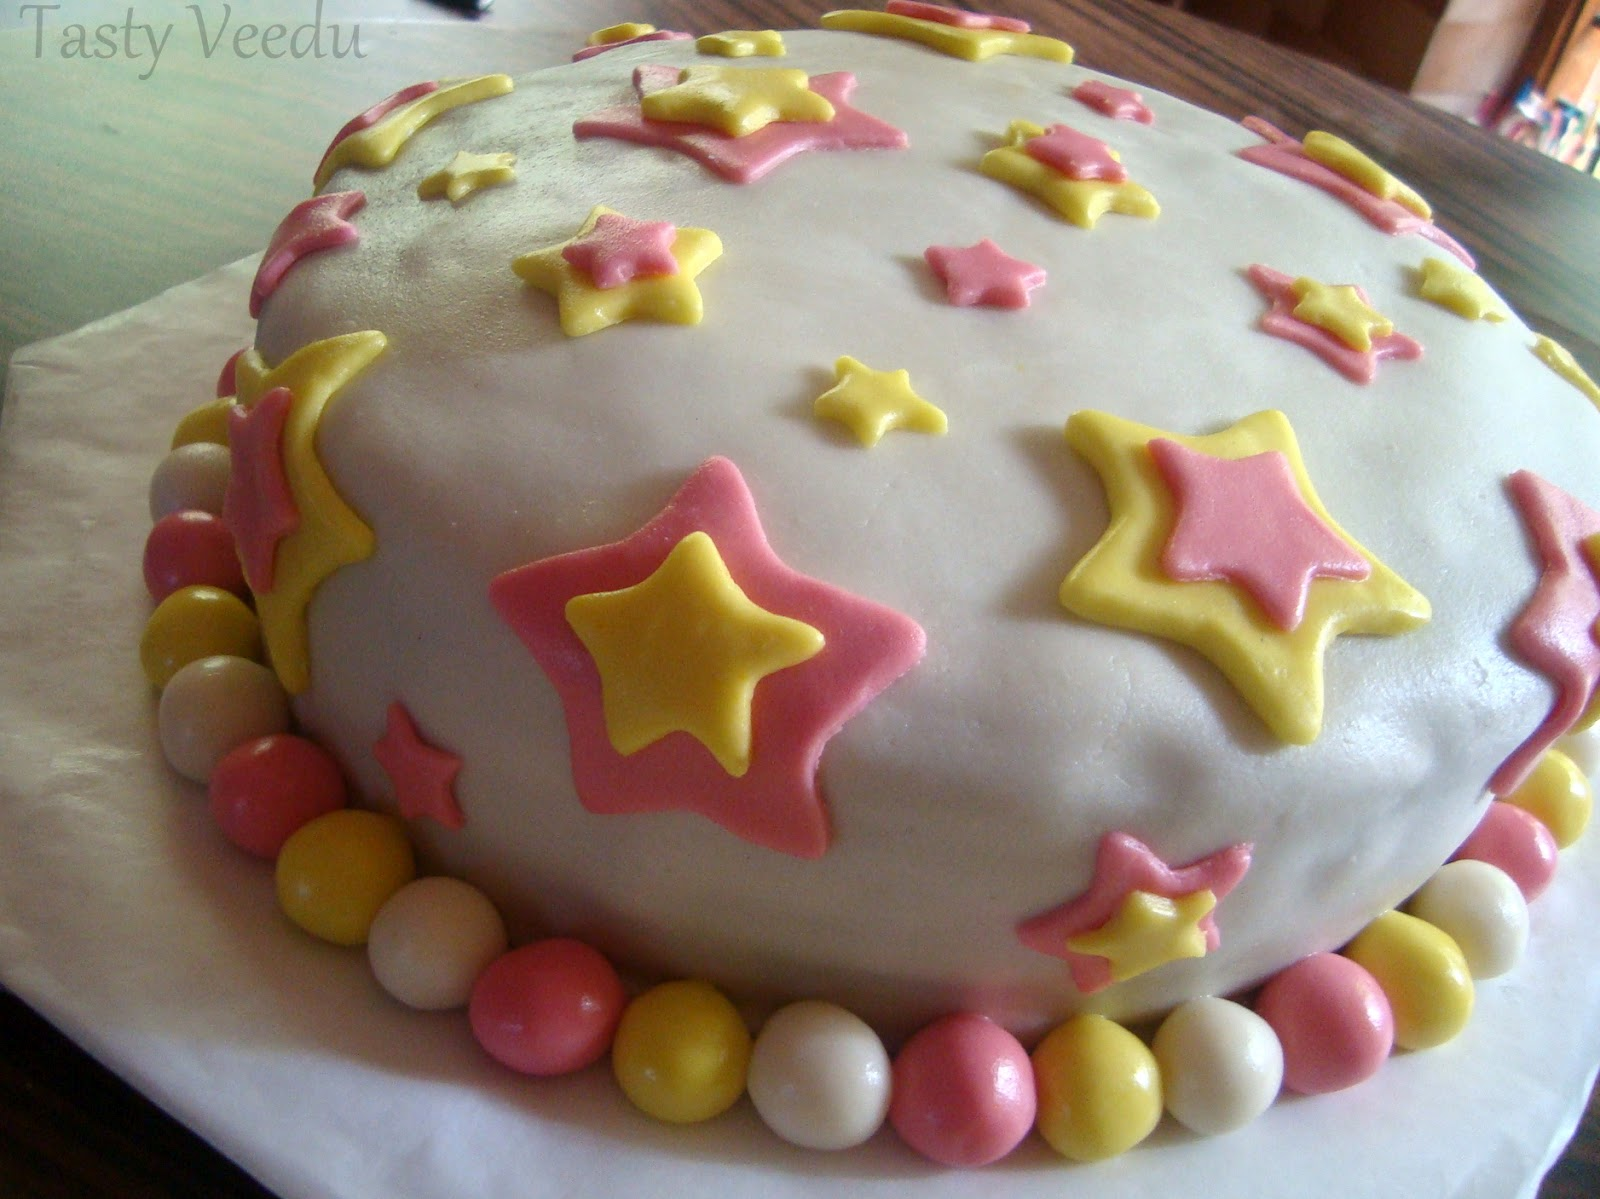 Cake Recipe For Icing With Fondant: Tasty Veedu: FONDANT BIRTHDAY CAKE